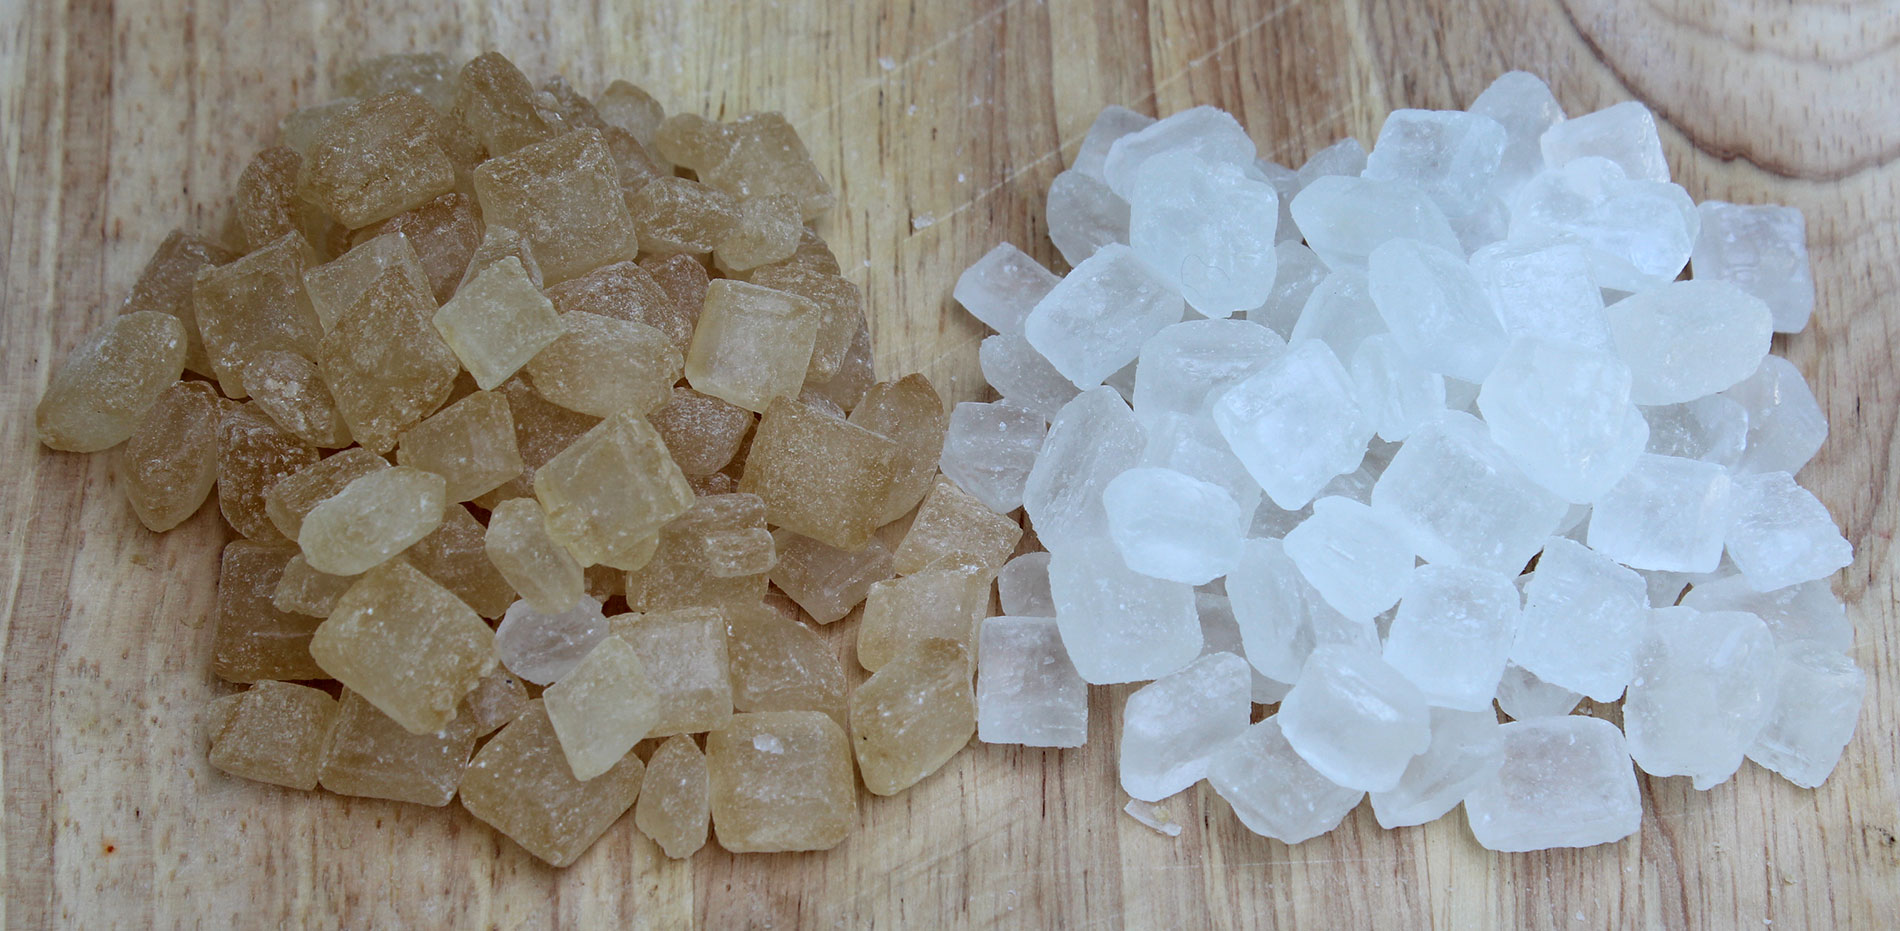 What is Monocrystalline Rock Sugar